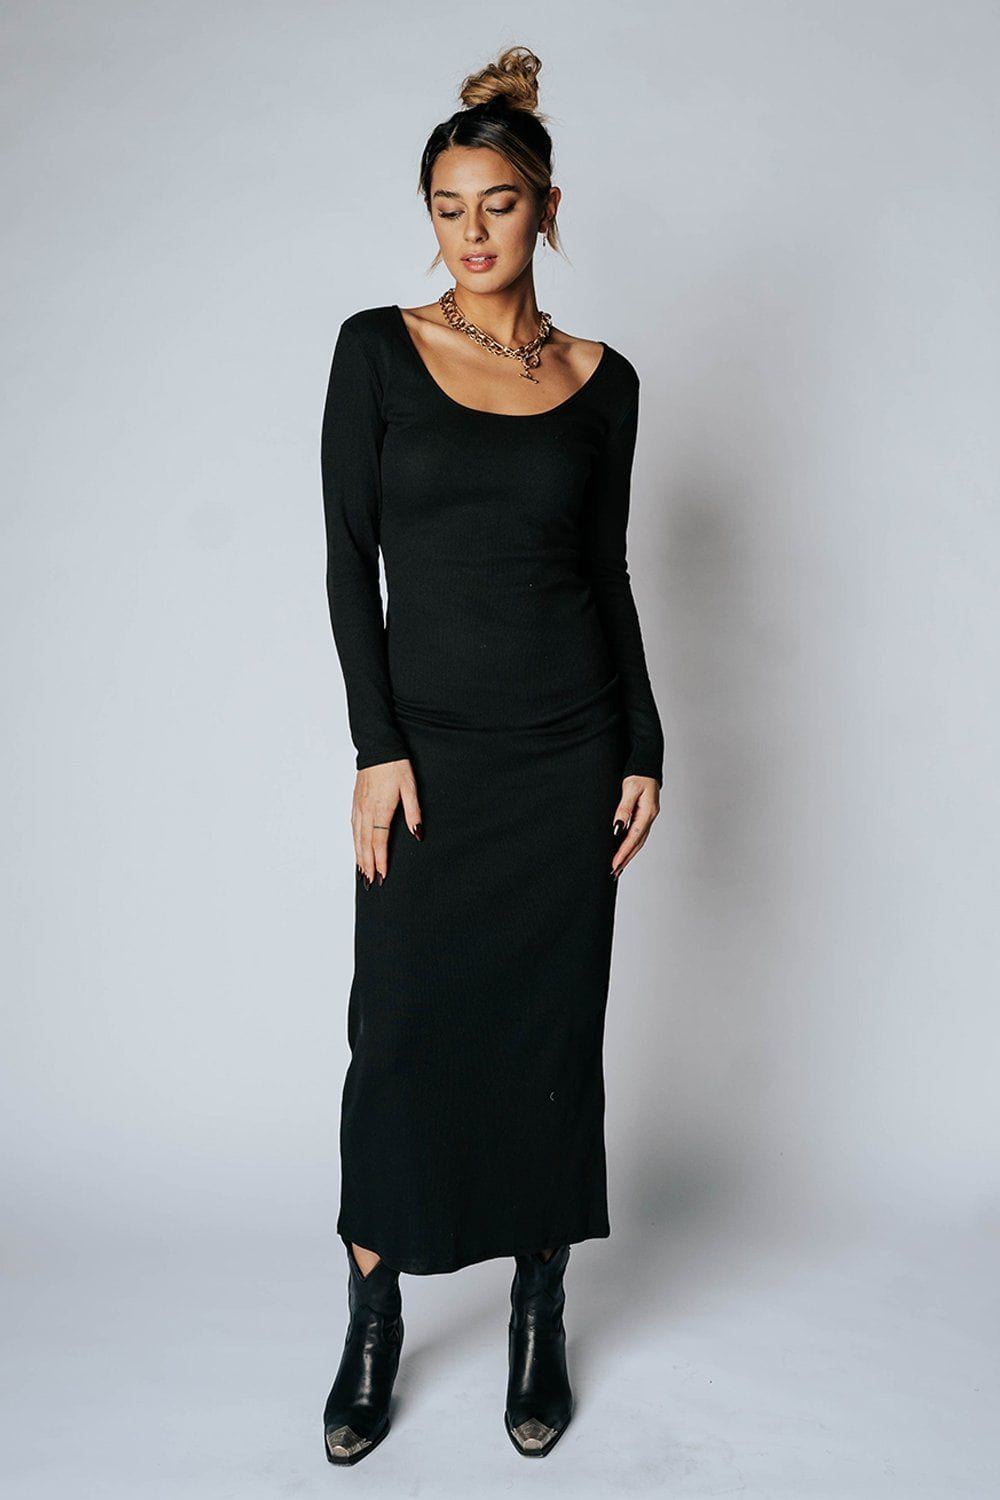 Back In Black Maxi Dress Heart & Hips Clad and Cloth